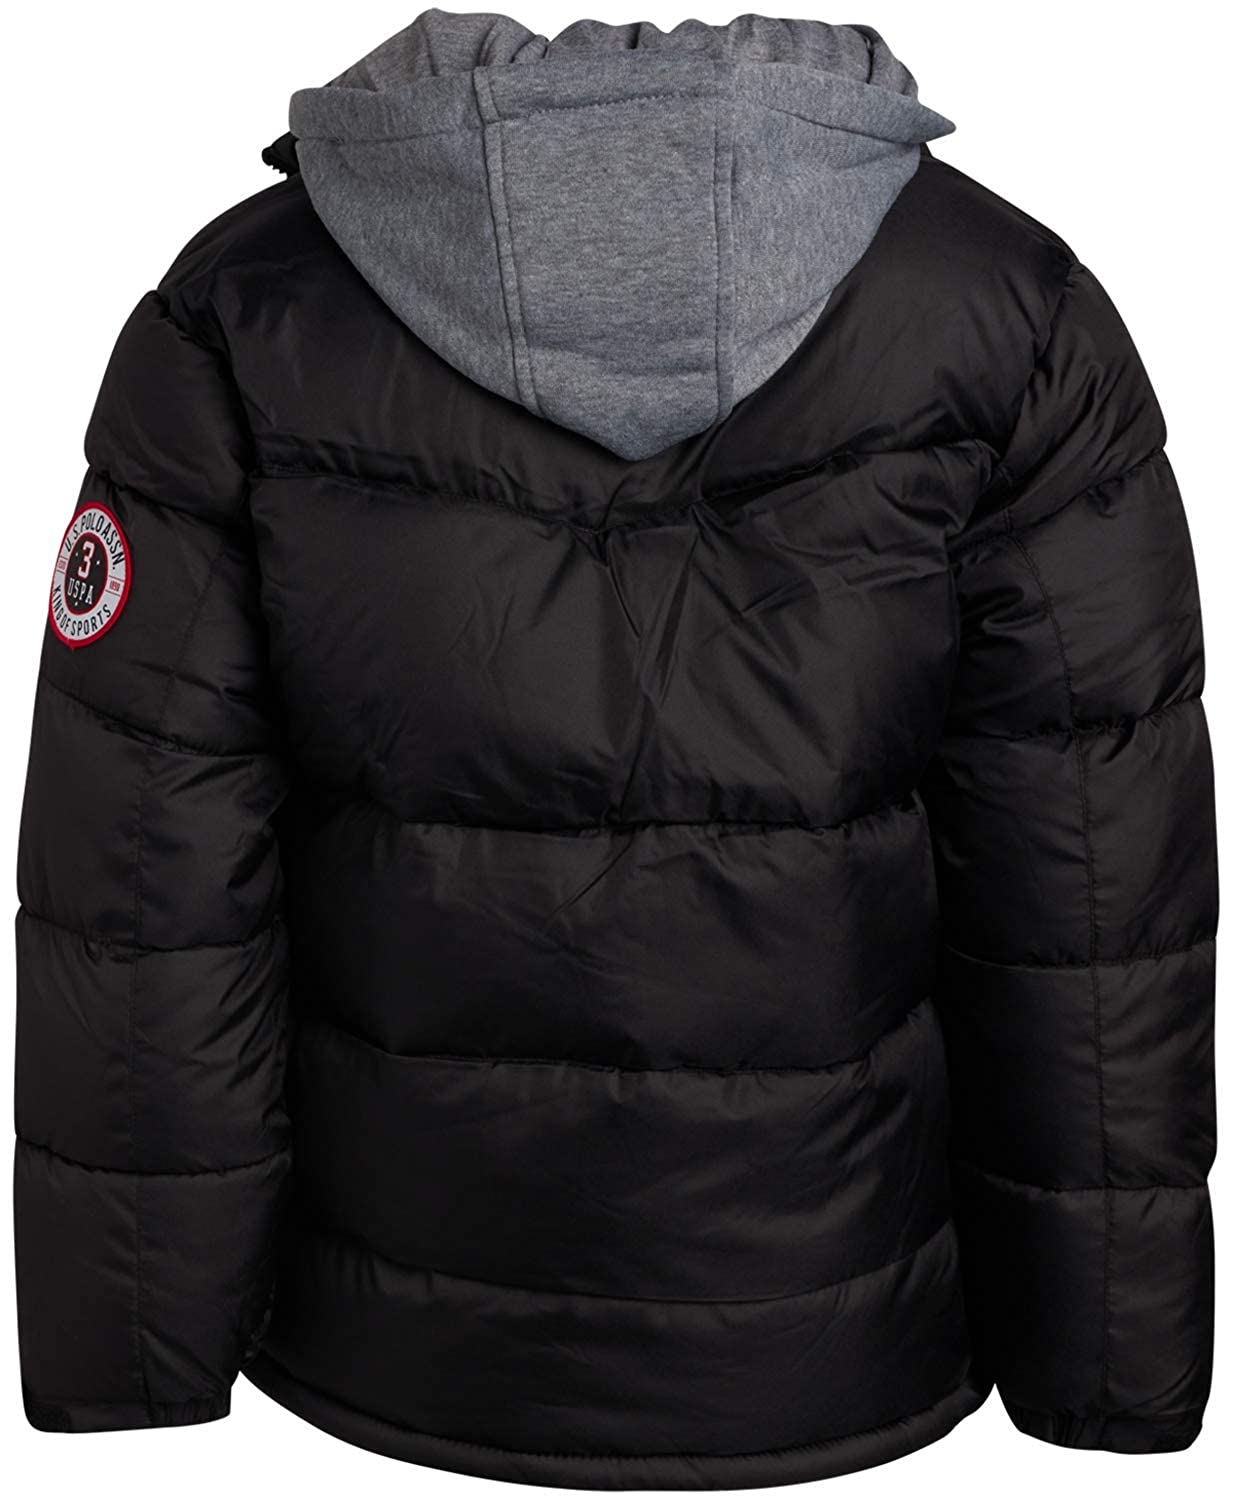 new products for search for original cheapest sale Amazon.com: U.S. Polo Assn. Boys Polar Fleece Lined Puffer ...